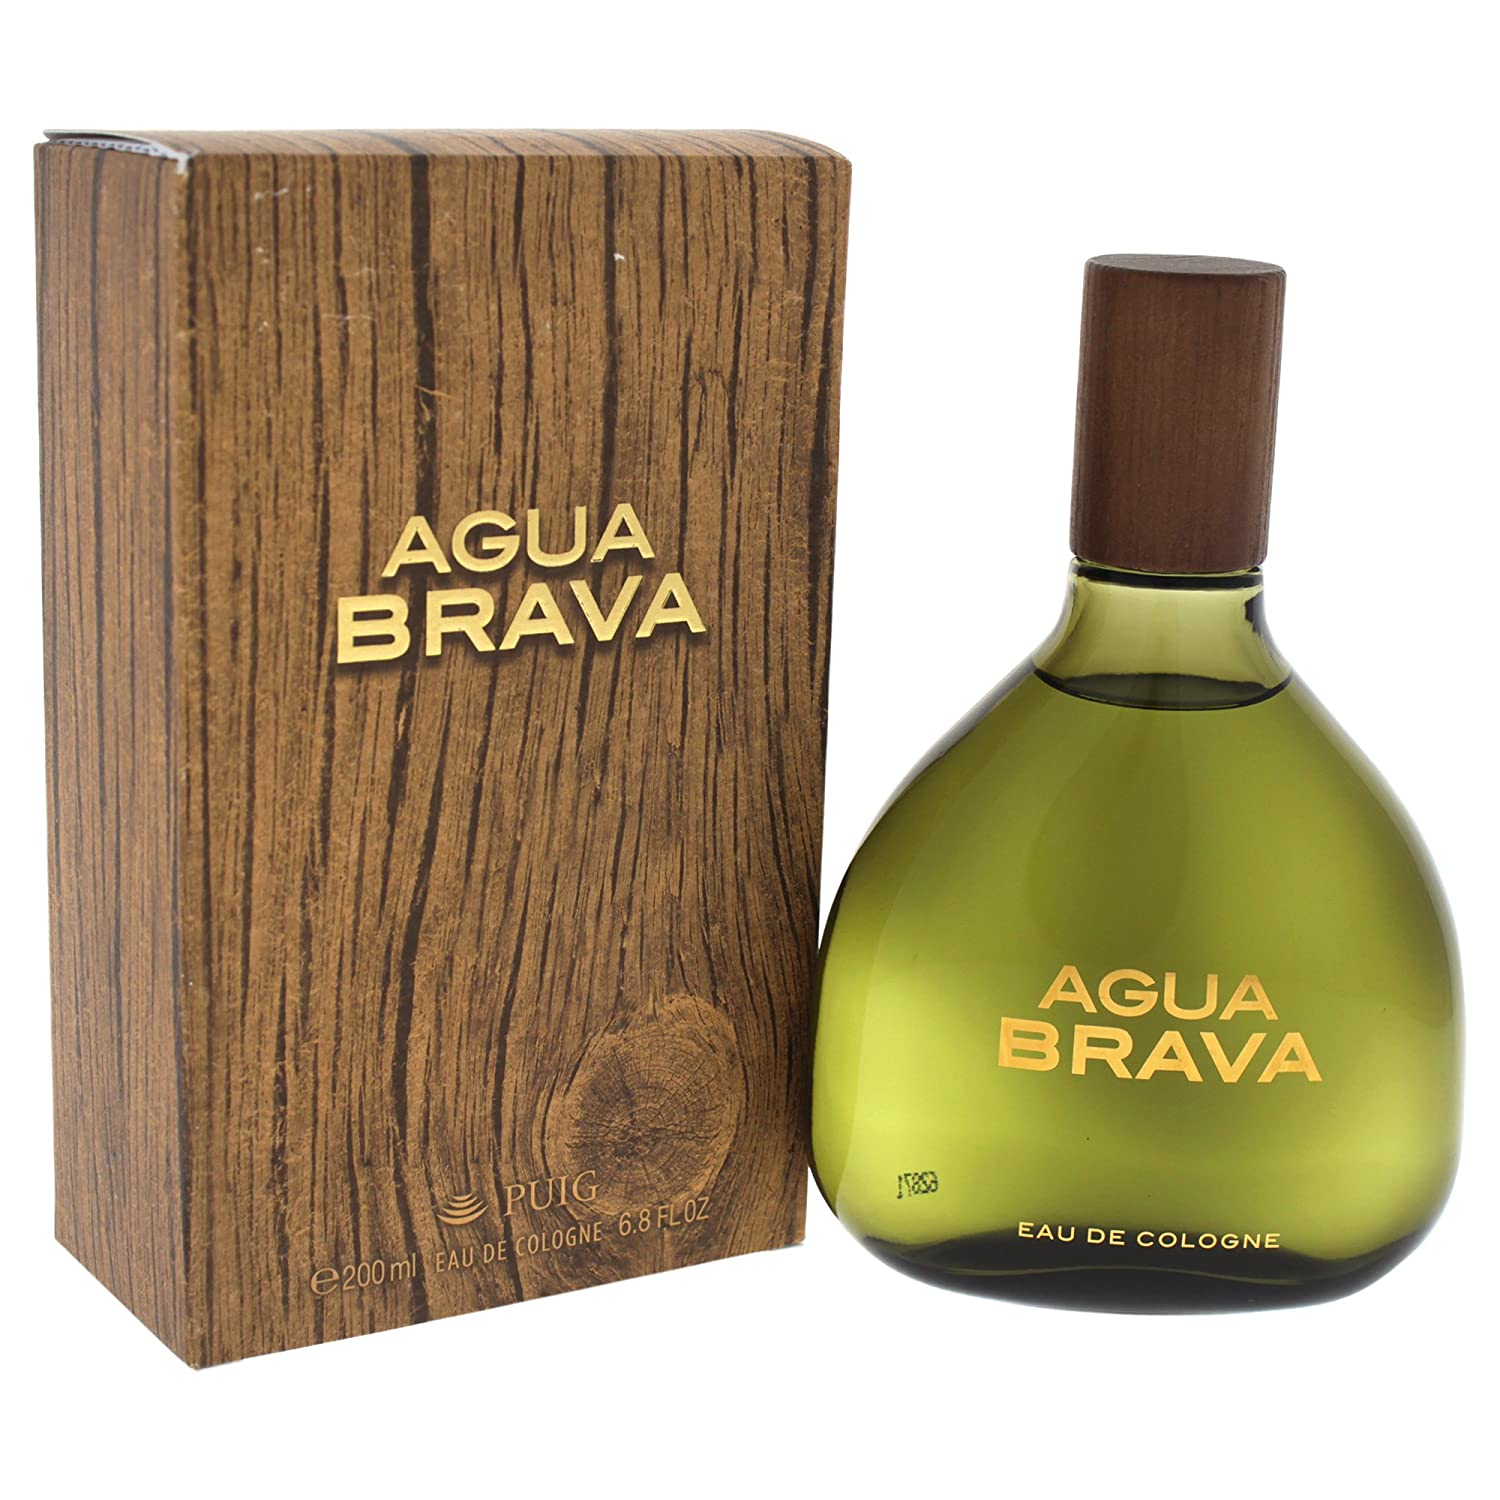 Antonio Puig Agua Brava Eau de Cologne Splash for Him 200 ml 125976